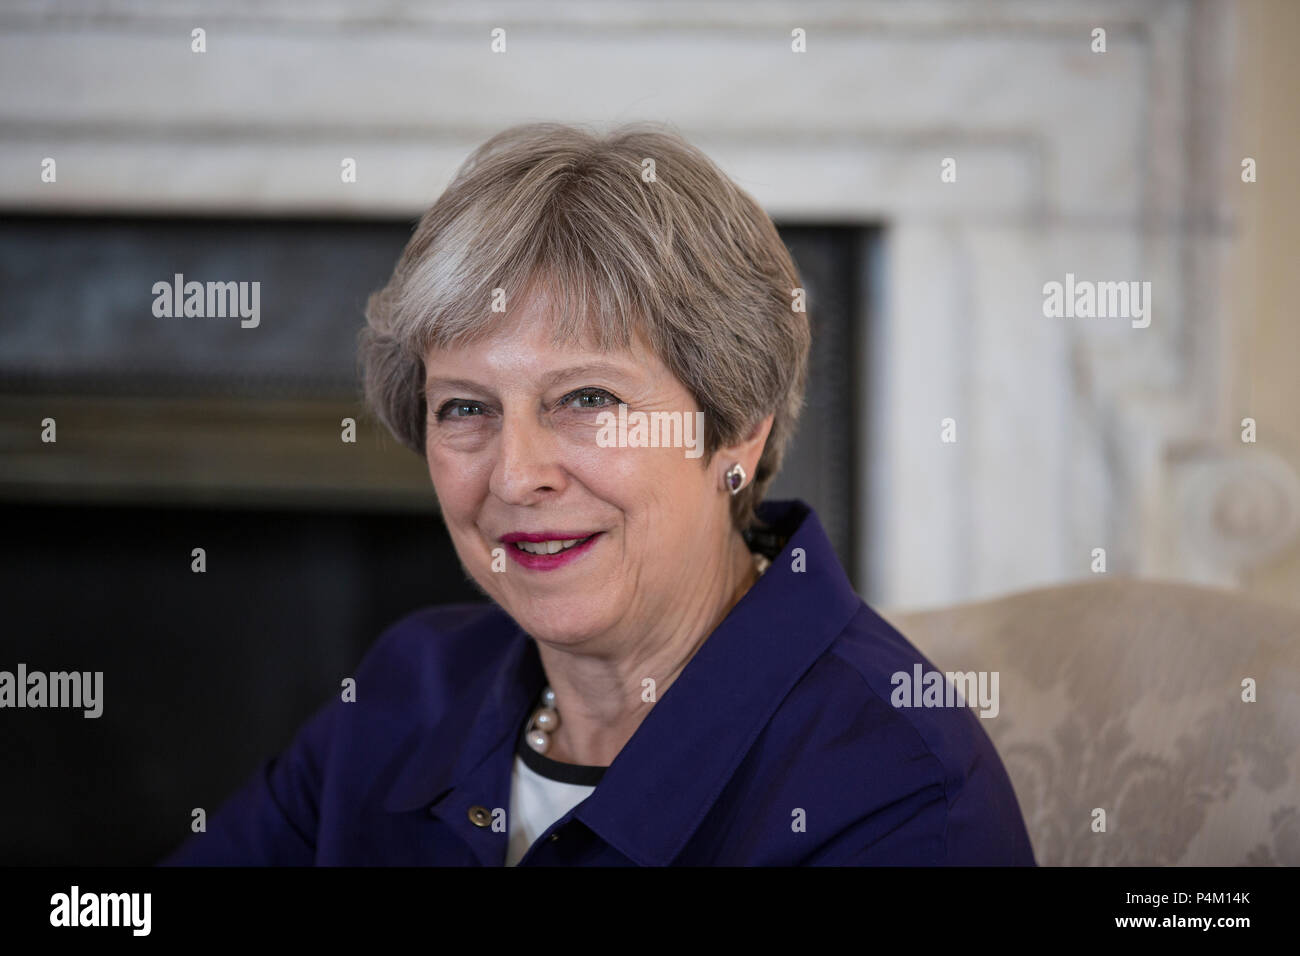 Theresa May, United Kingdom Prime Minister, photographed at No.10 Downing Street, during a visit by Jens Stoltenberg, NATO General Secretary. - Stock Image